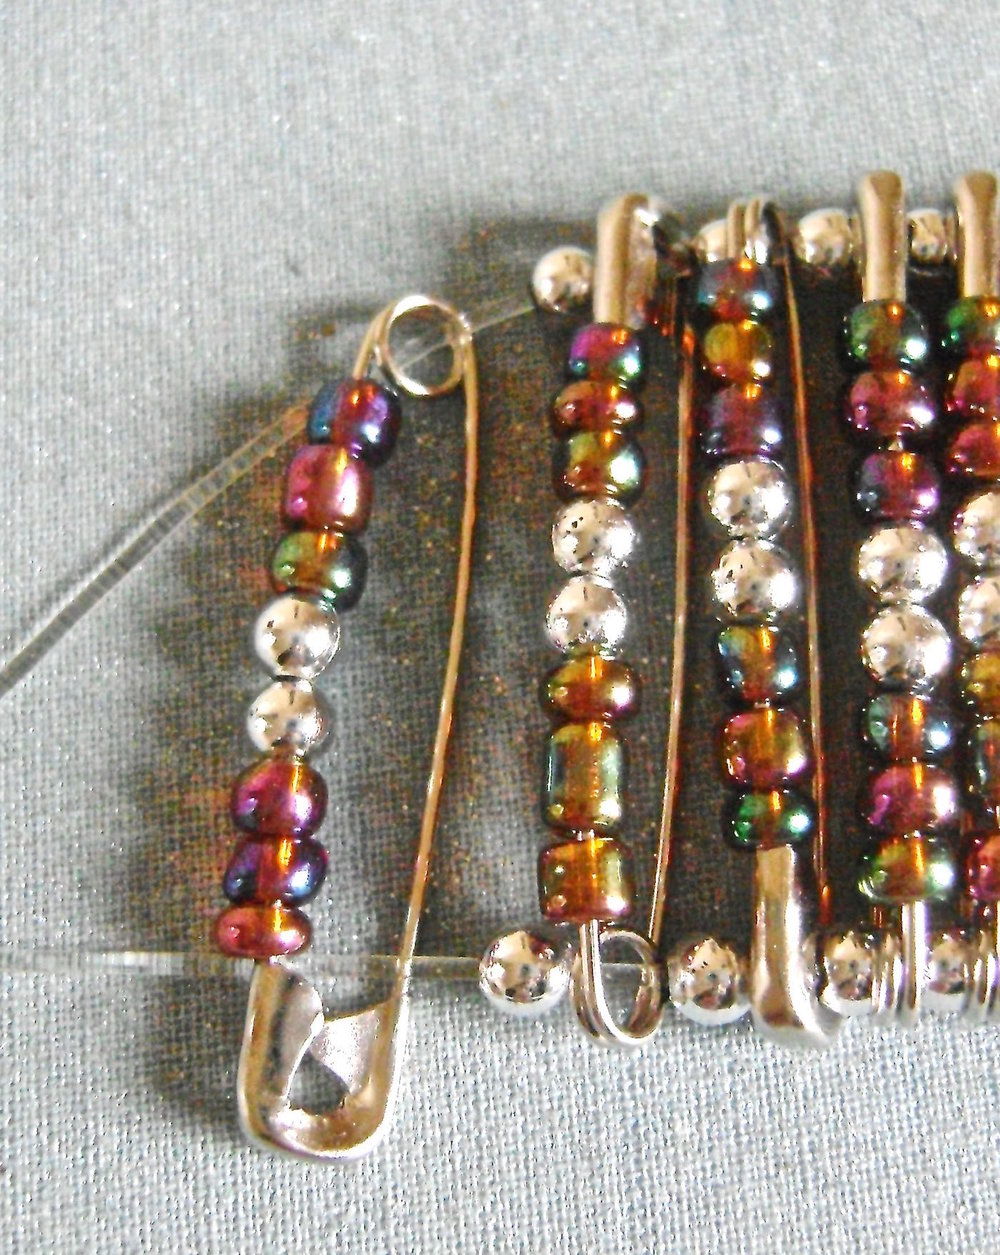 "step 2 - I used 52 pins for this 6.5"" bracelet. Measure your wrist to determine if you need more. Cut two lengths of stretchy cord to measure 8"" or more. Thread the pins onto the cord alternating between pin bottoms and tops with the beads always facing you. Place a 3mm silver bead in between pins. The orientation of the last pin on the cord should be opposite the first pin. After adding the last pin, add a 3mm silver bead to each cord."